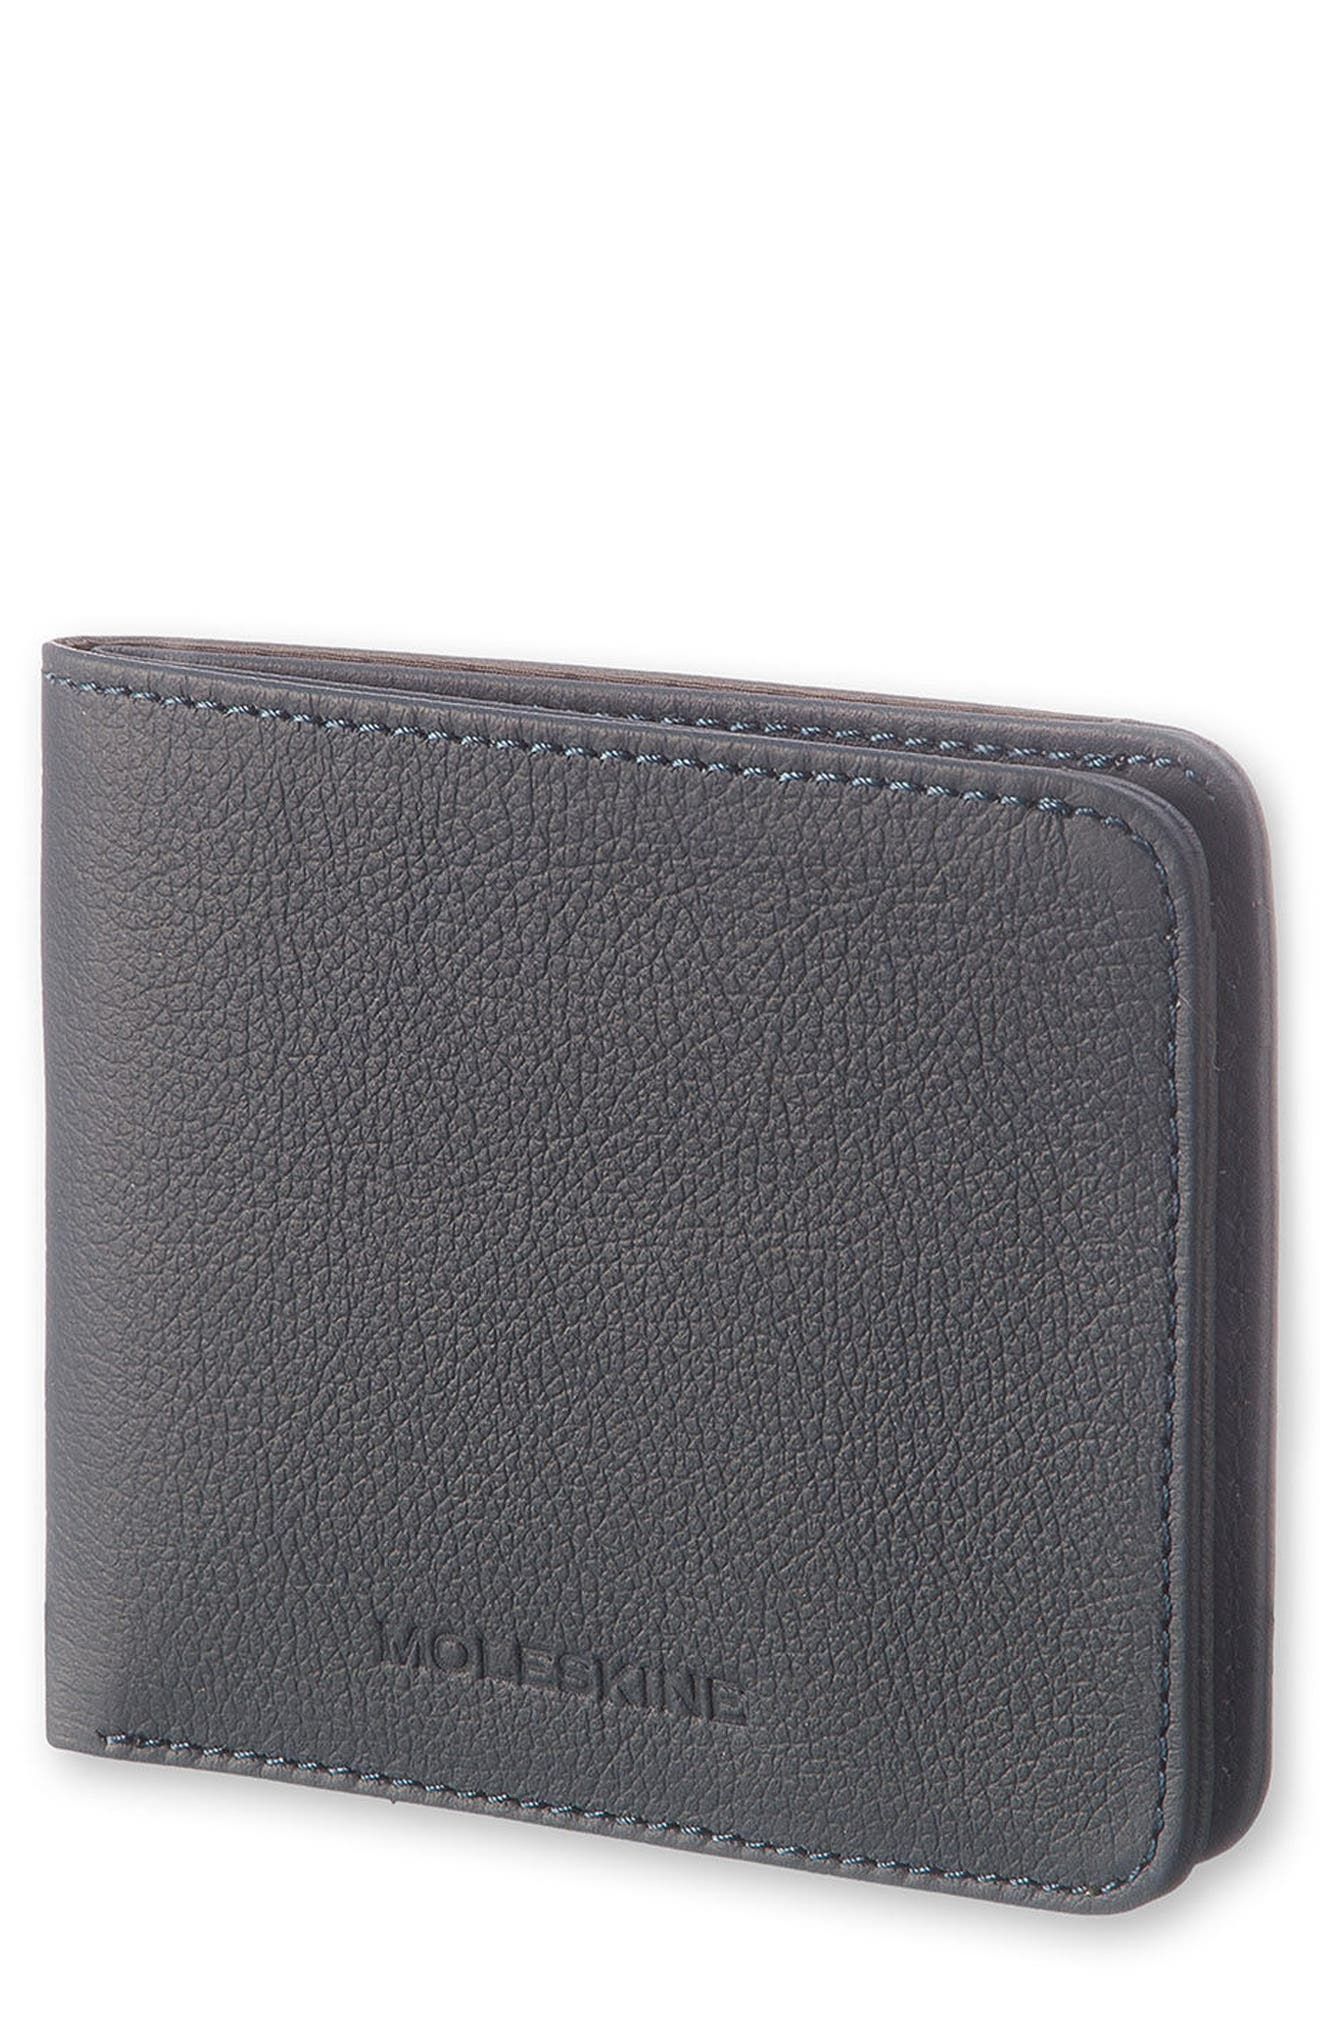 Lineage Leather Wallet,                         Main,                         color, Avio Blue